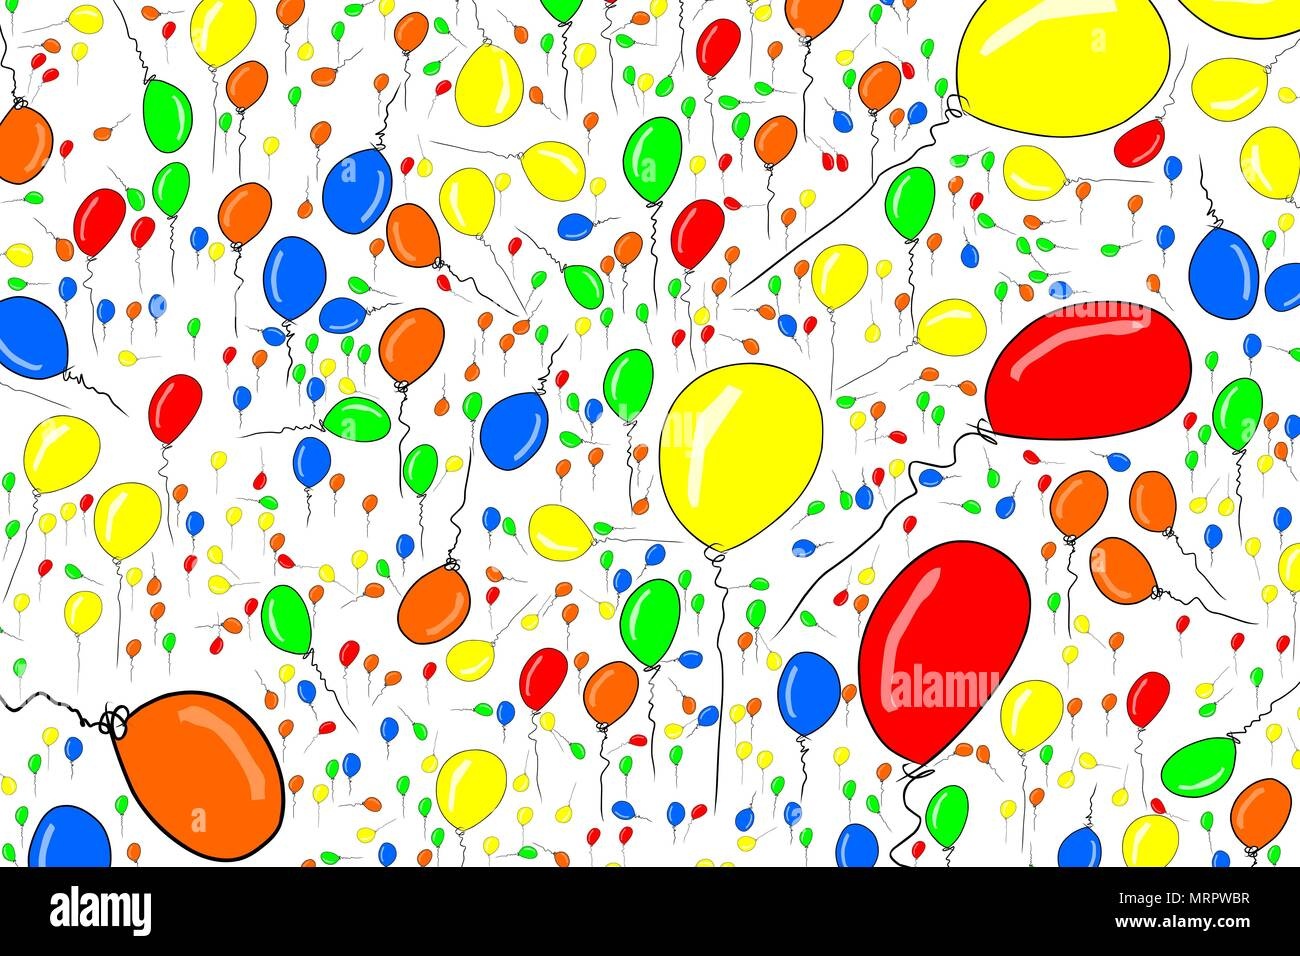 Hand Drawn Flying Balloons Illustrations Background Good